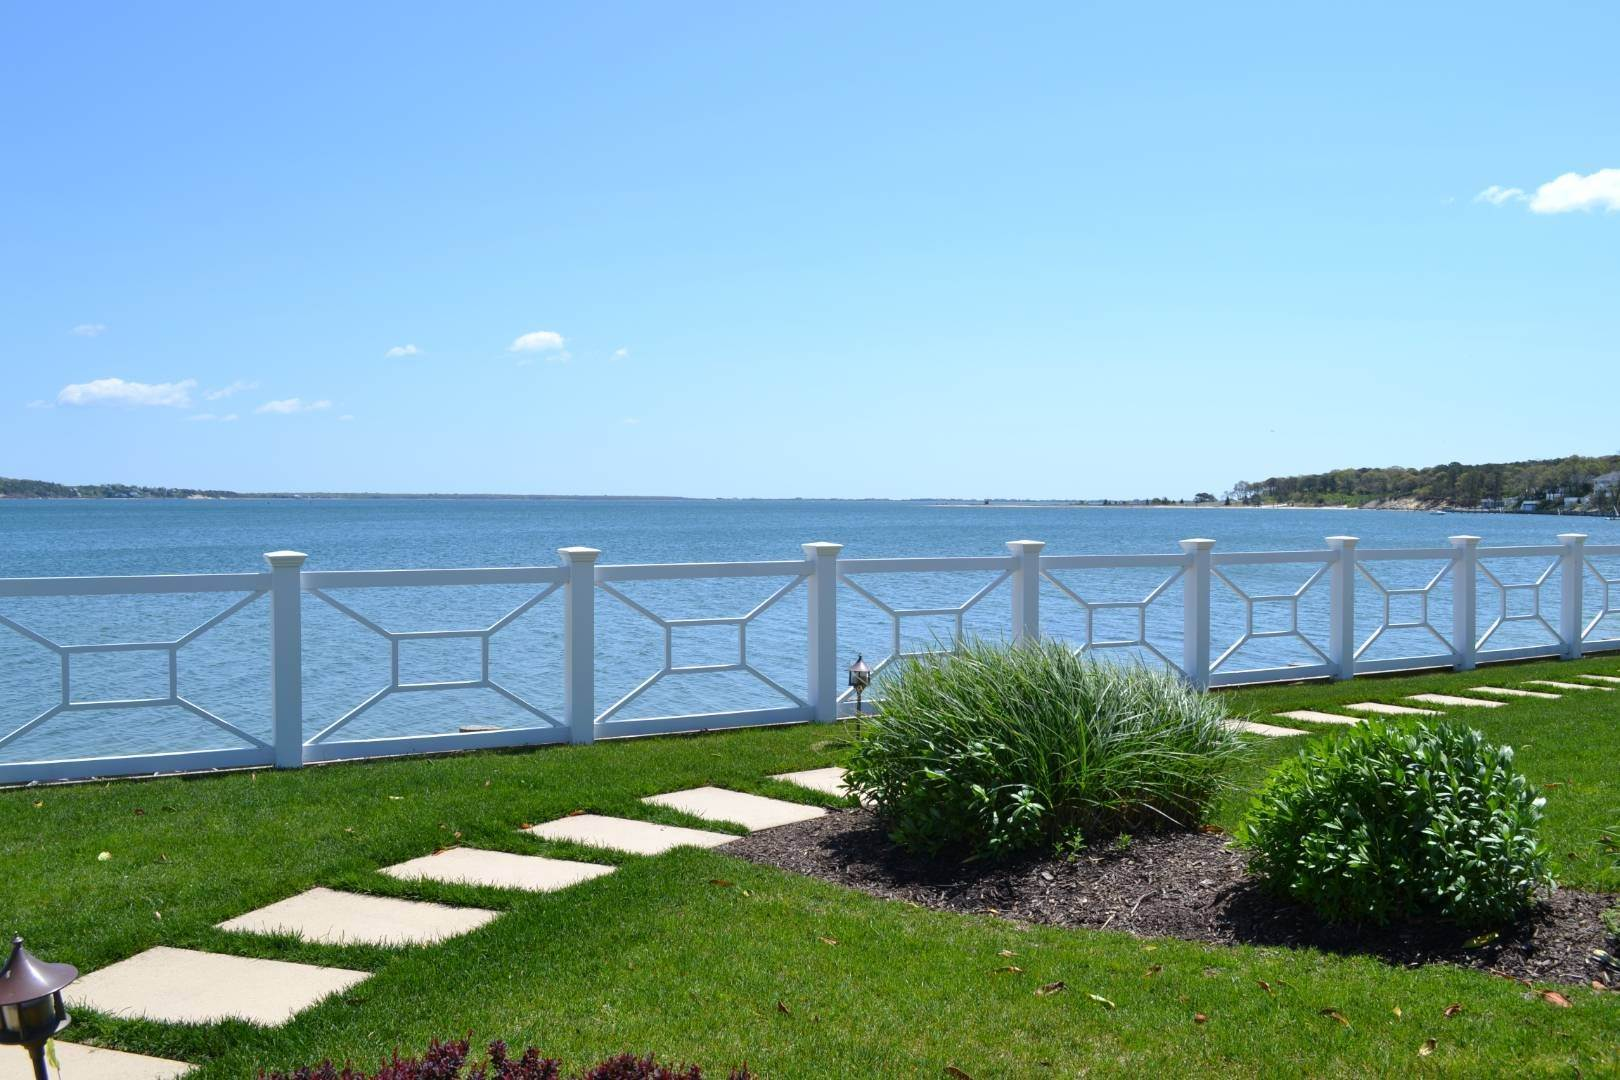 2. Condominiums at Bay Front Two Bedroom Condo Hampton Bays, NY 11946